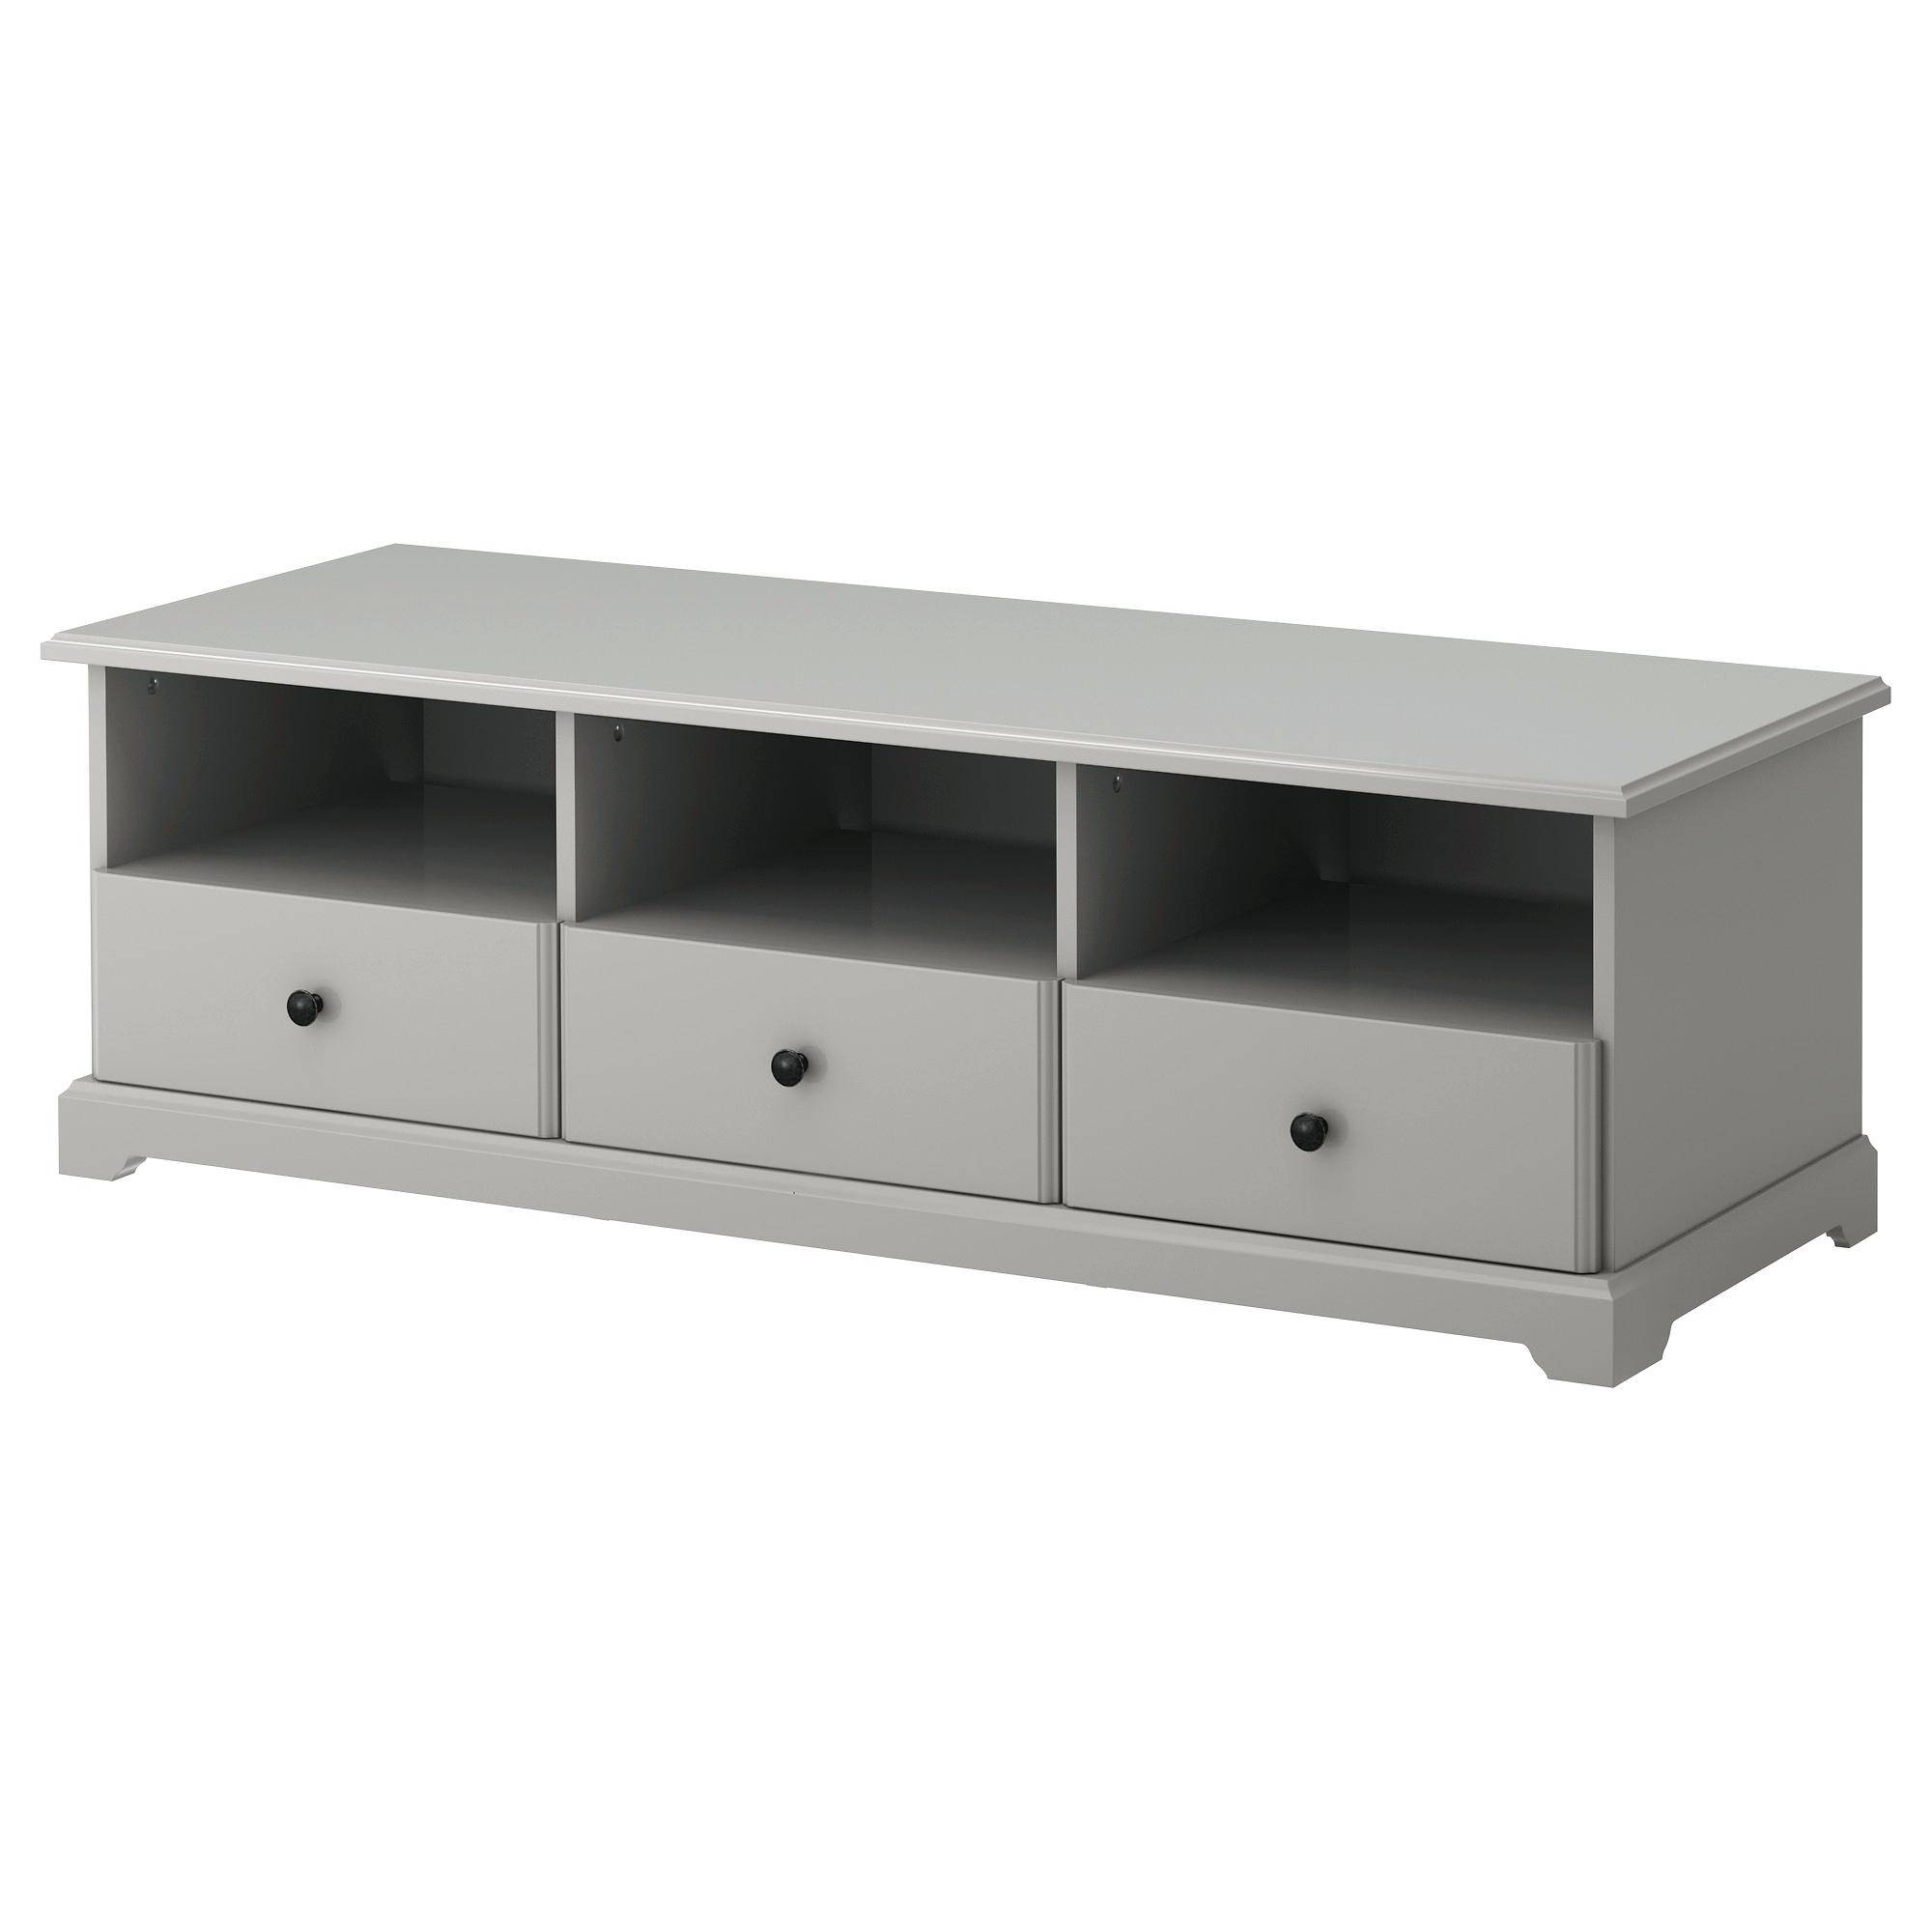 Shelves : Shelves Furniture White Tv Shelving Unit White Corner Tv throughout Corner Tv Unit White Gloss (Image 8 of 15)